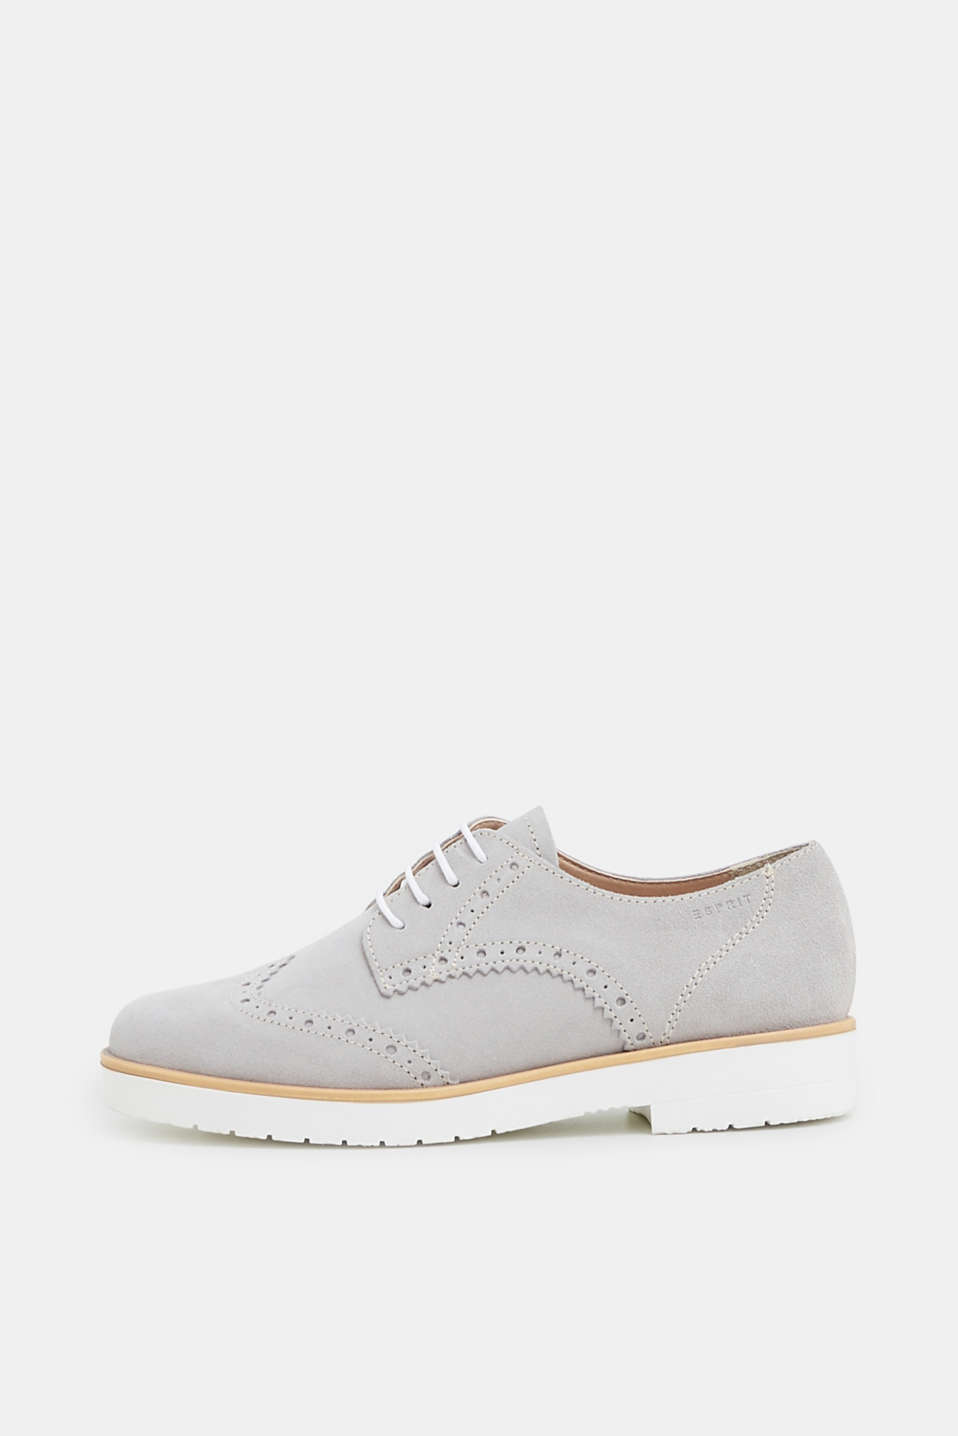 Esprit - Lace-up shoe with a brogue pattern, made of leather